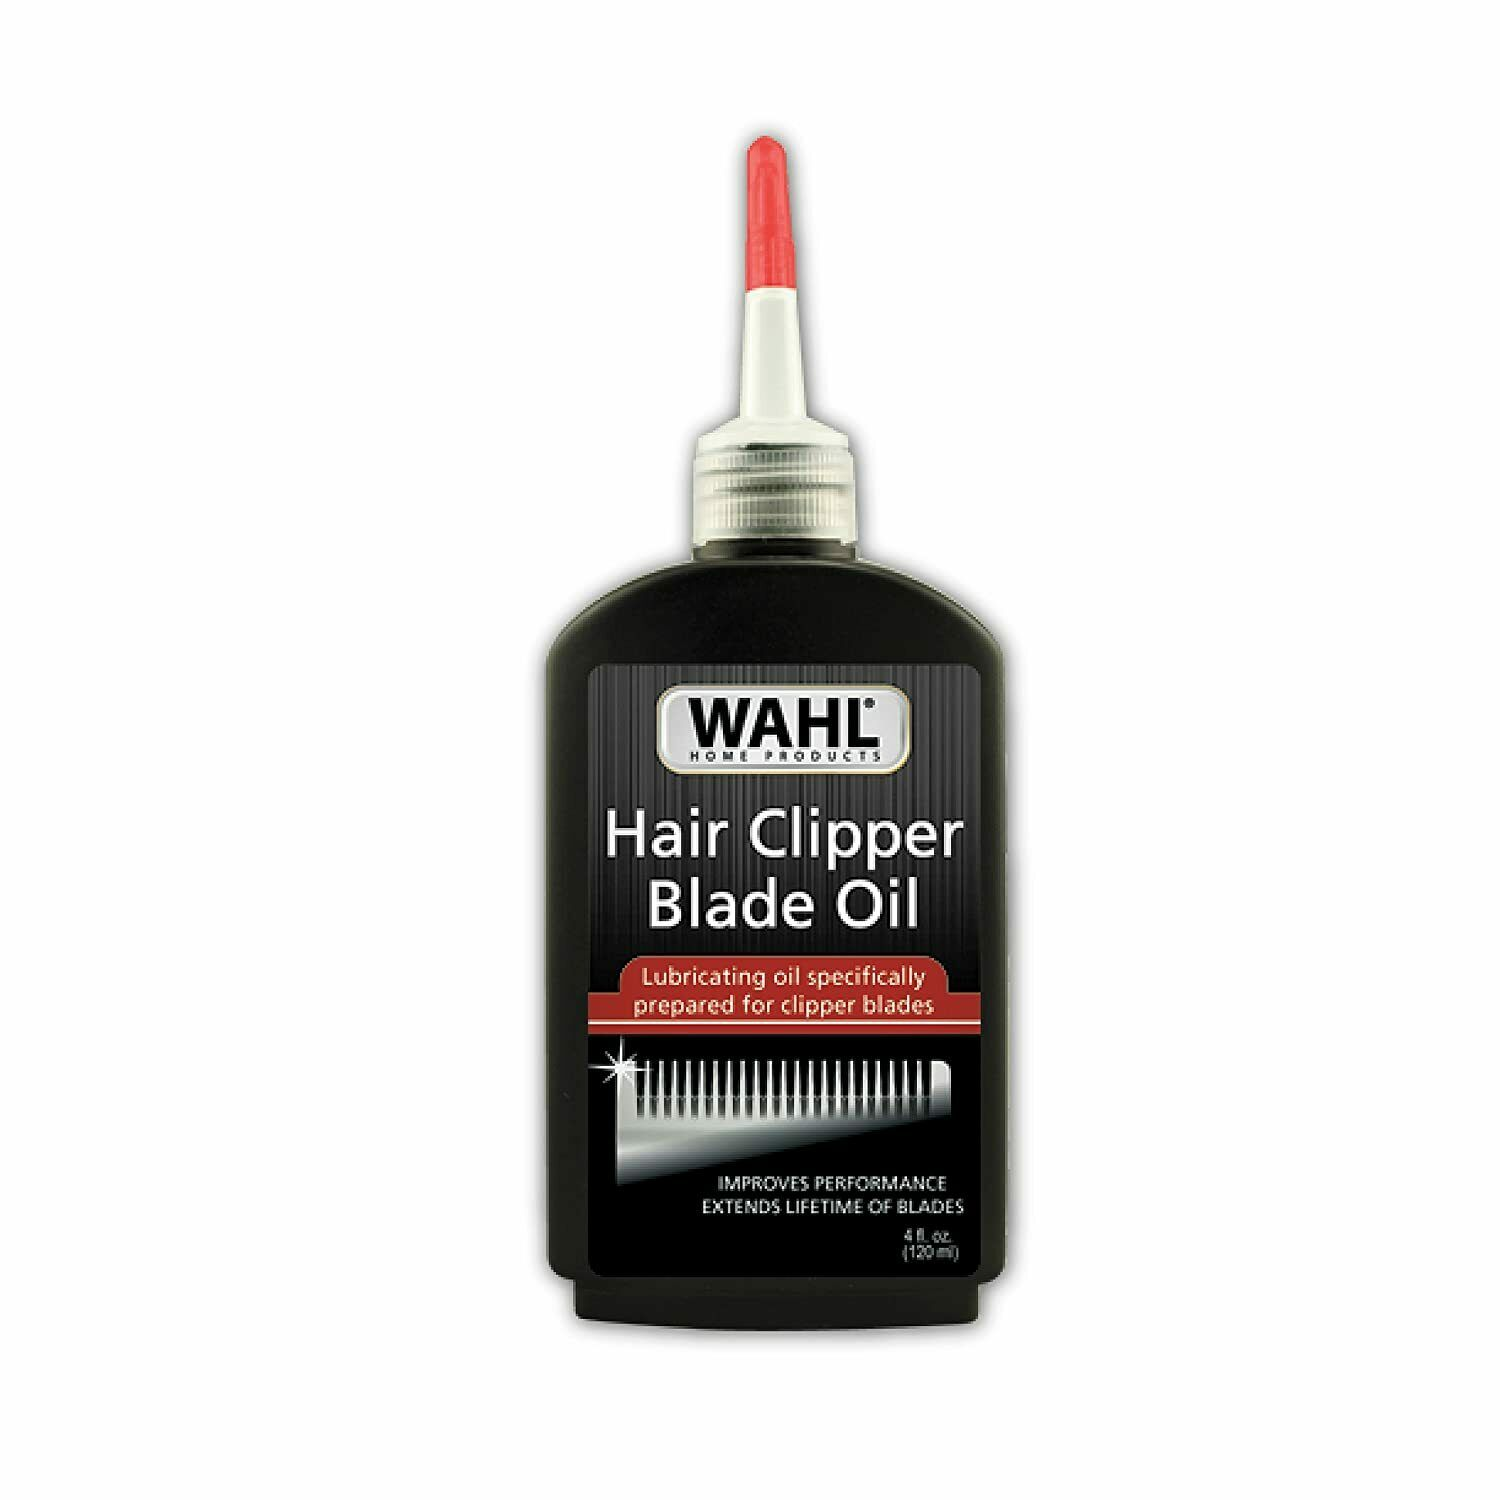 Wahl Premium Hair Clipper Blade Lubricating Oil for Clippers and Trimmers, 4 oz